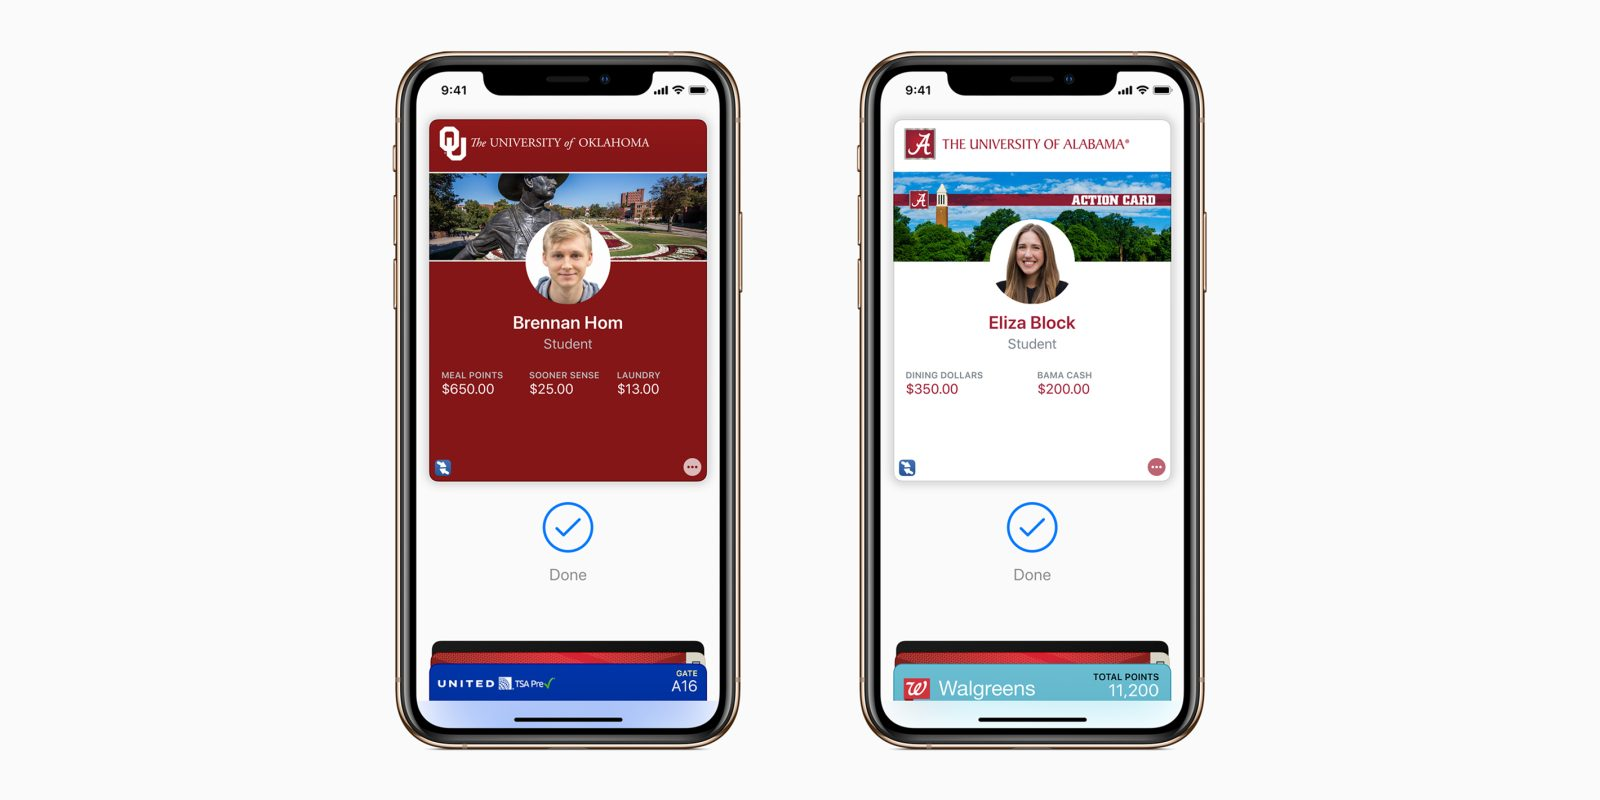 Id And Campus Apple As Three Their Use Us Watch Card Universities - Iphone Students Let 9to5mac Now